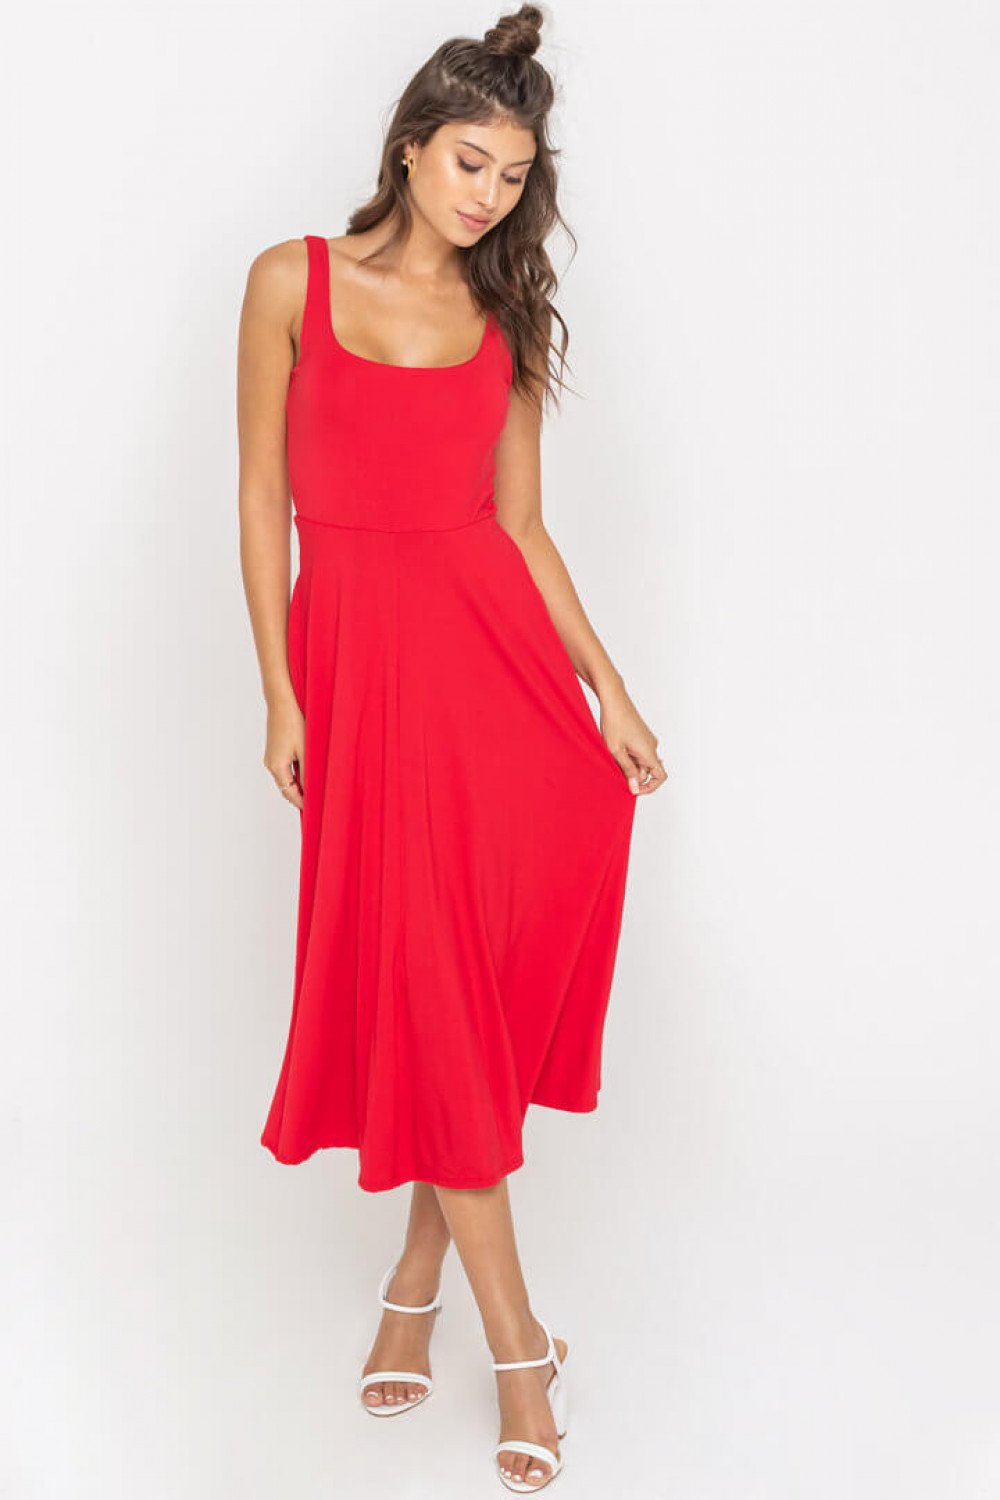 UNIKONCEPT Lifestyle boutique: Mode is wearing a bright red mid length lush dress. The Lola dress has a square neckline, thin straps, is an a line cut dress and features pockets